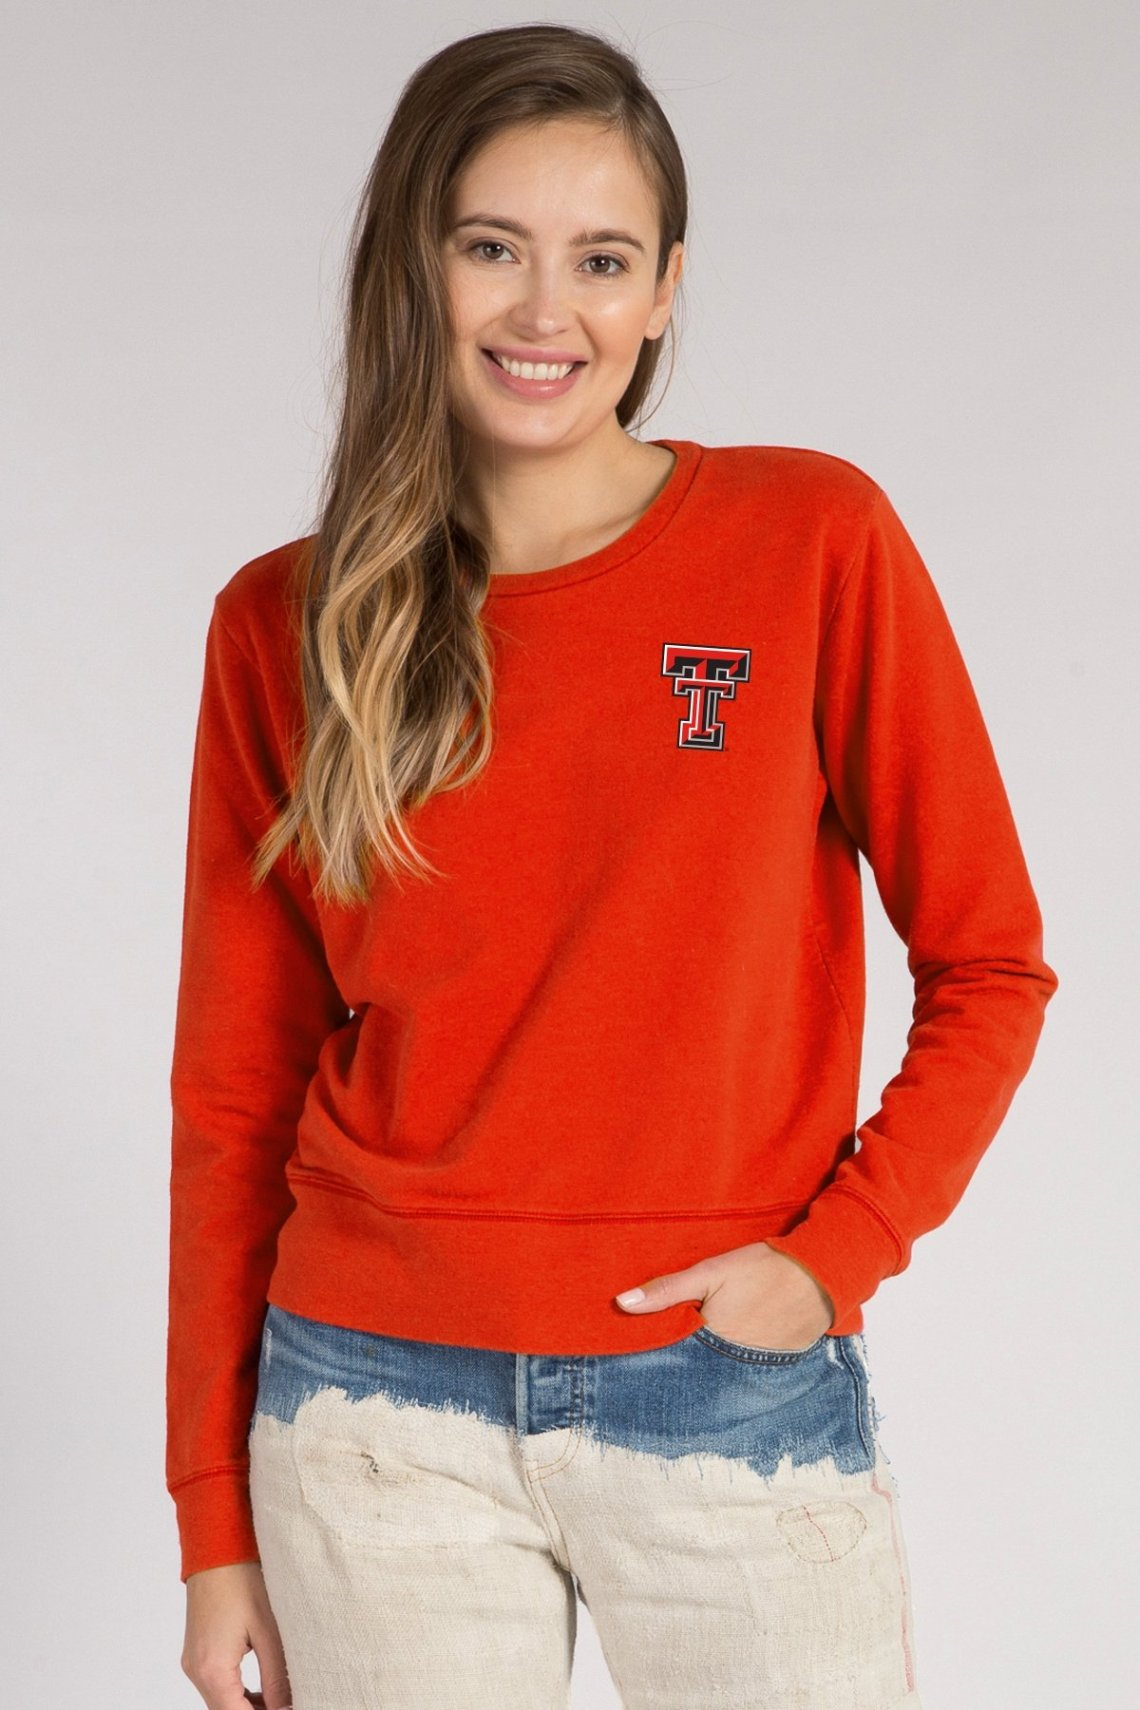 Classic Crew Neck Top, Texas Tech University